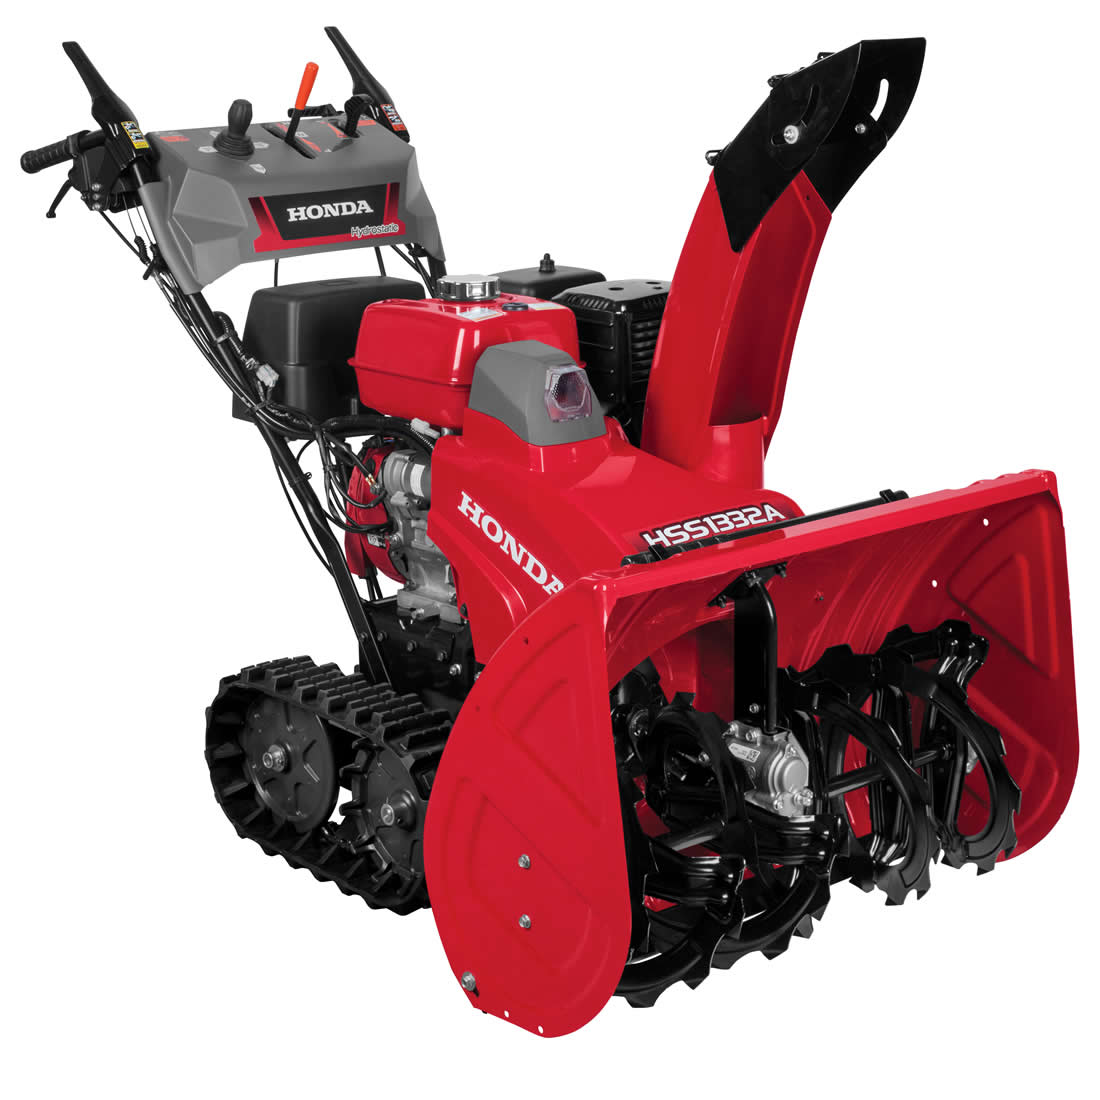 PRODUCT REVIEW: Honda HSS1332ATD – Putting Snow in the Neighbor's Yard